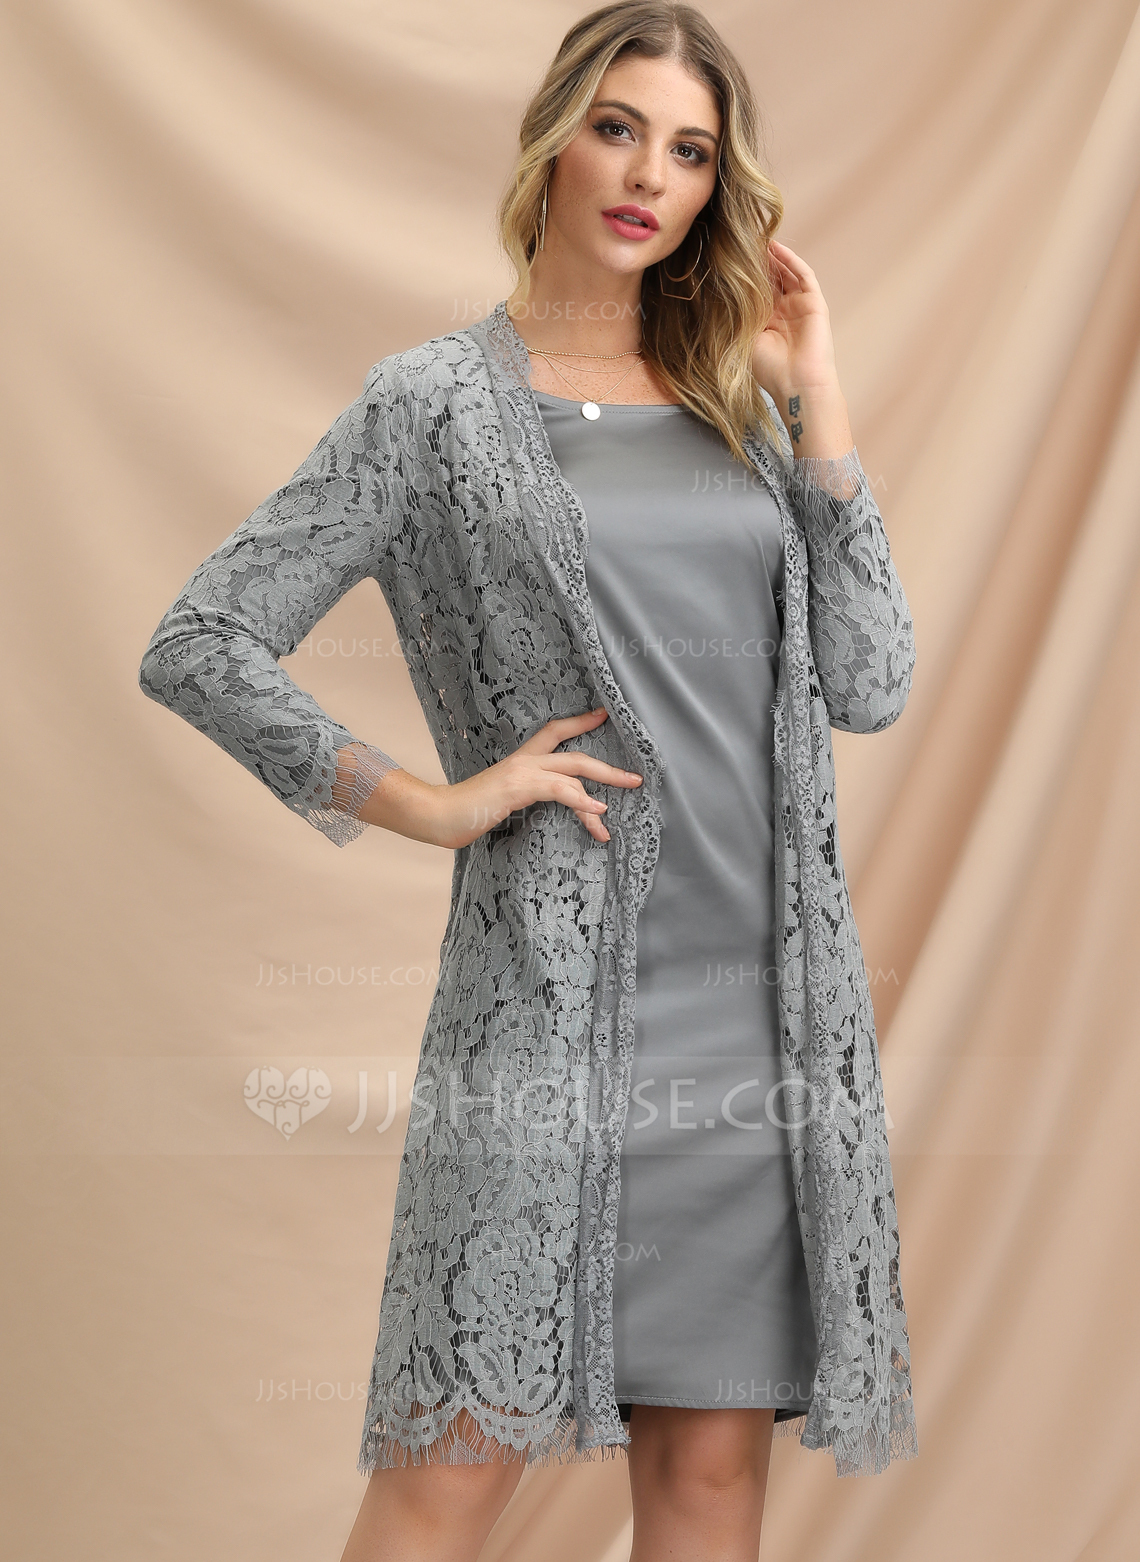 Polyester/Lace With Lace/Solid Knee Length Dress (Two Pieces)